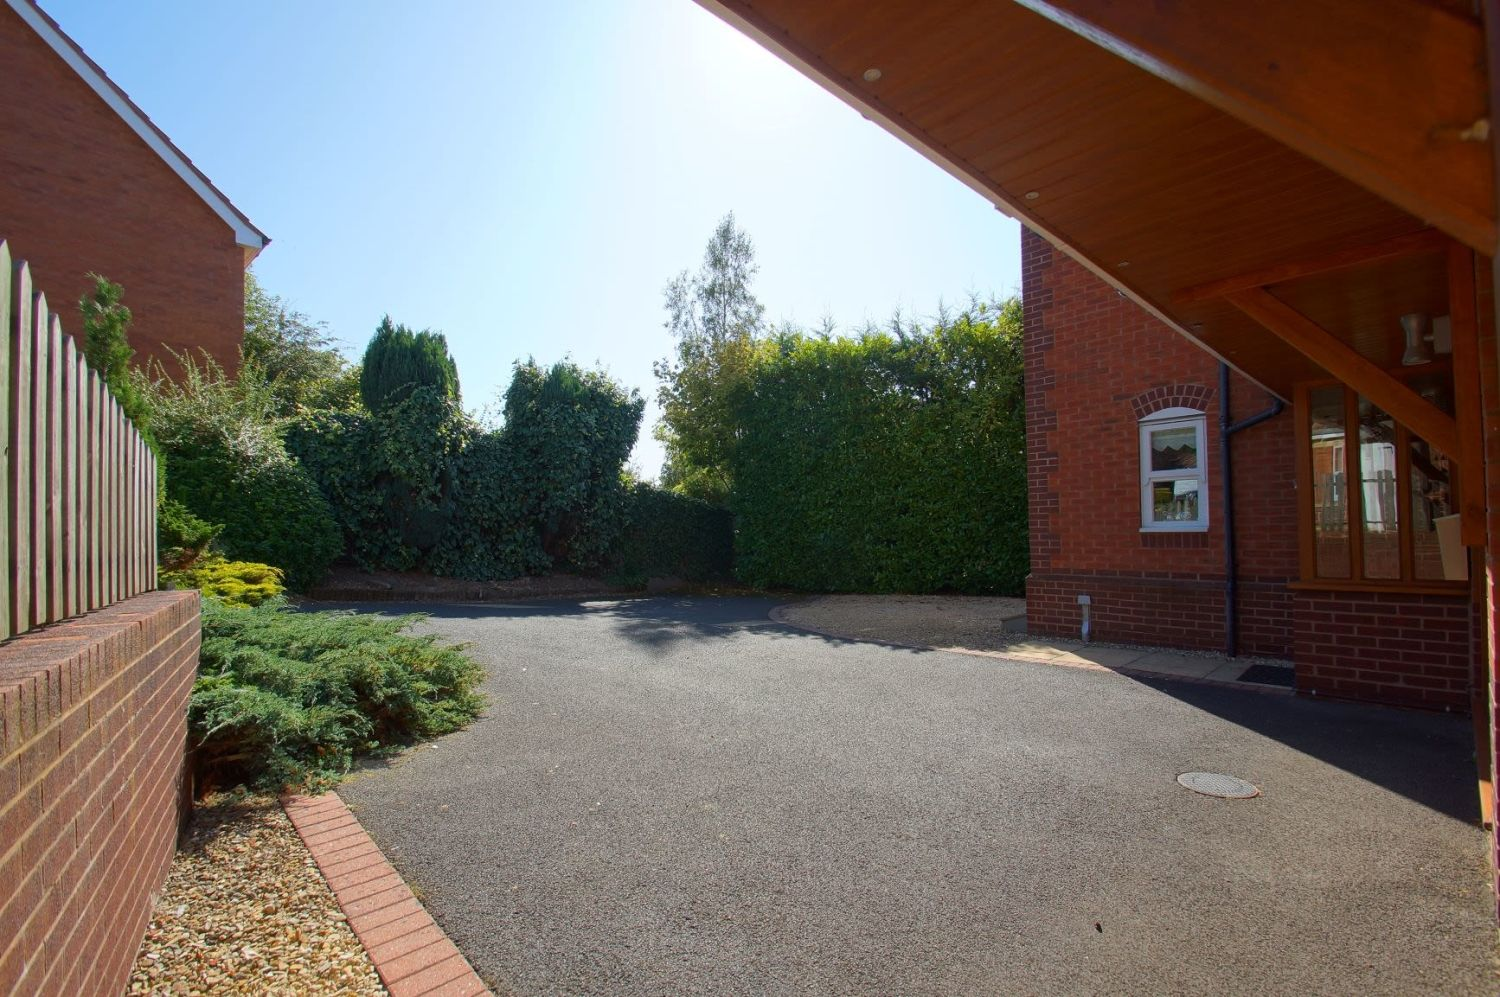 4 bed detached for sale in Acre Lane, Webheath  - Property Image 3